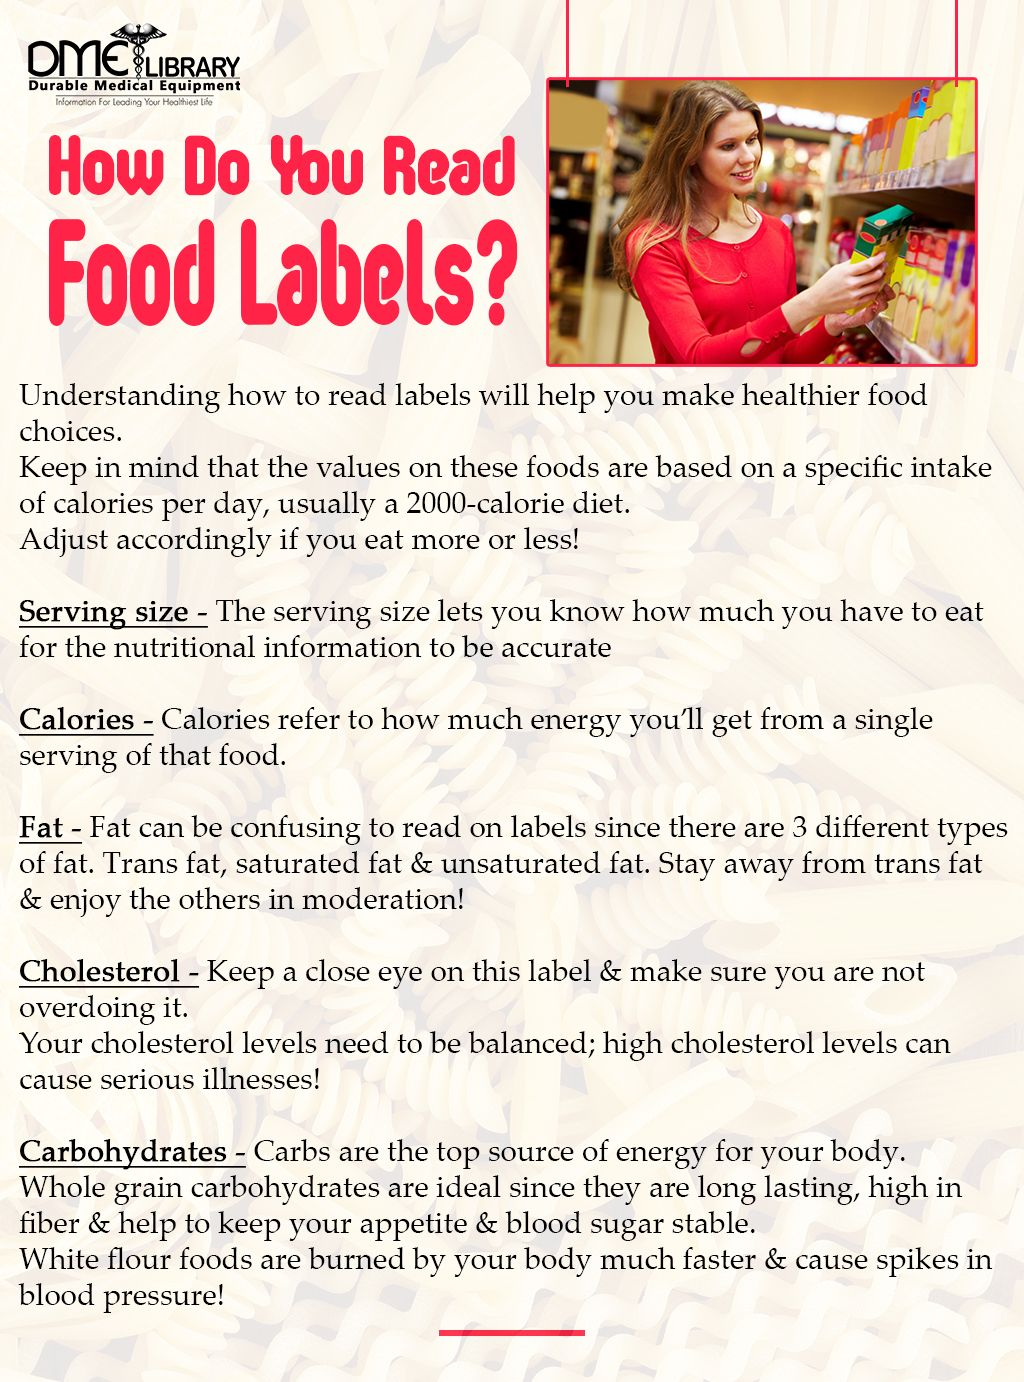 Food Labels Can Seem Confusing At First But Learning How To Read Food Labels Is An Important Life Skill That Will Impro Reading Food Labels Food Labels Labels [ 1382 x 1024 Pixel ]